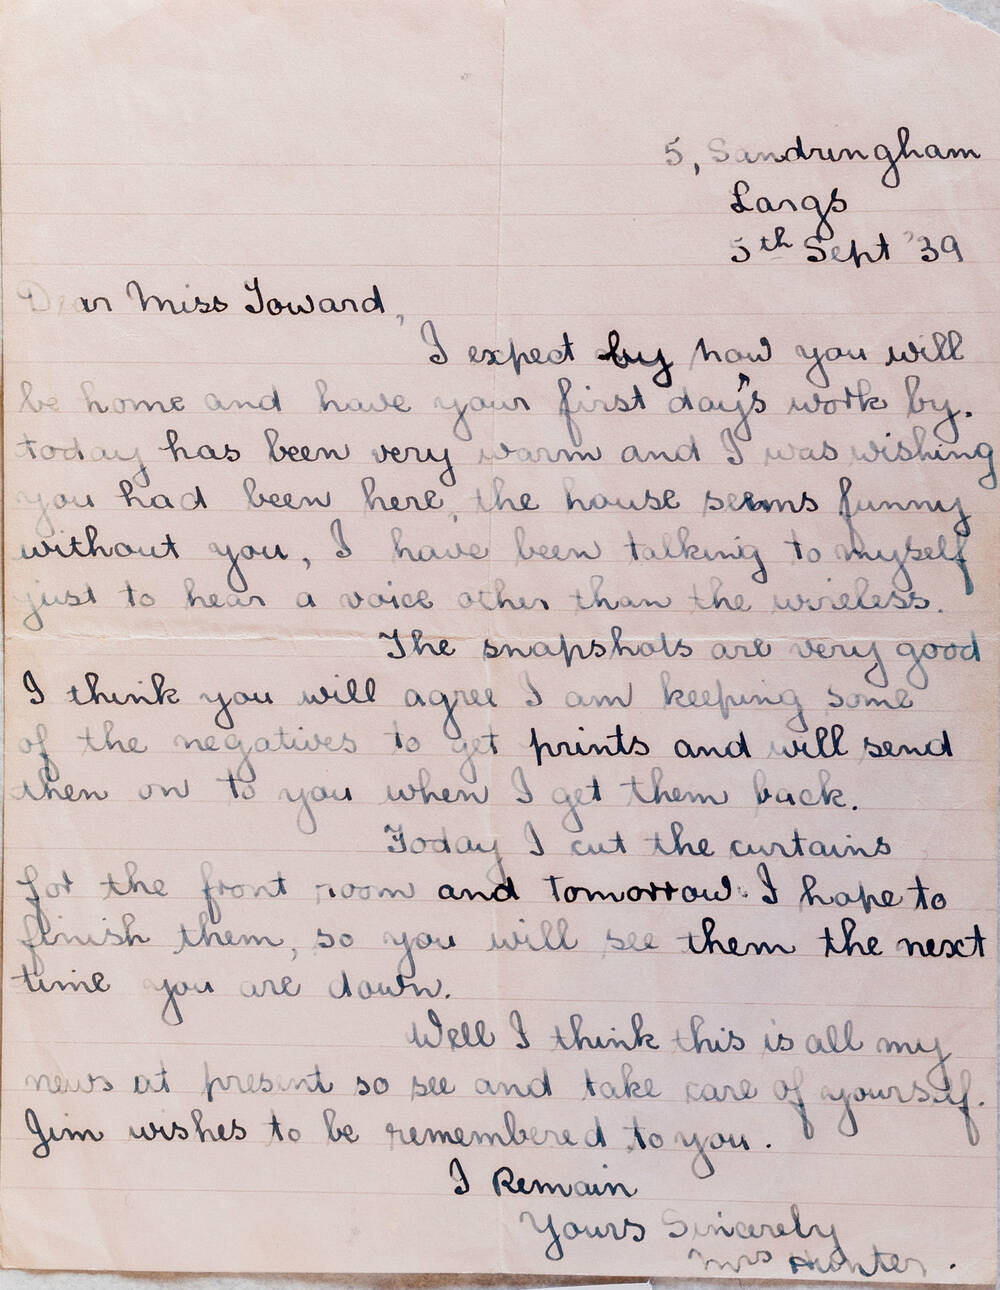 A letter in black ink on lined paper to Miss Toward from Miss Hunter discussing sharing 'snapshots'.